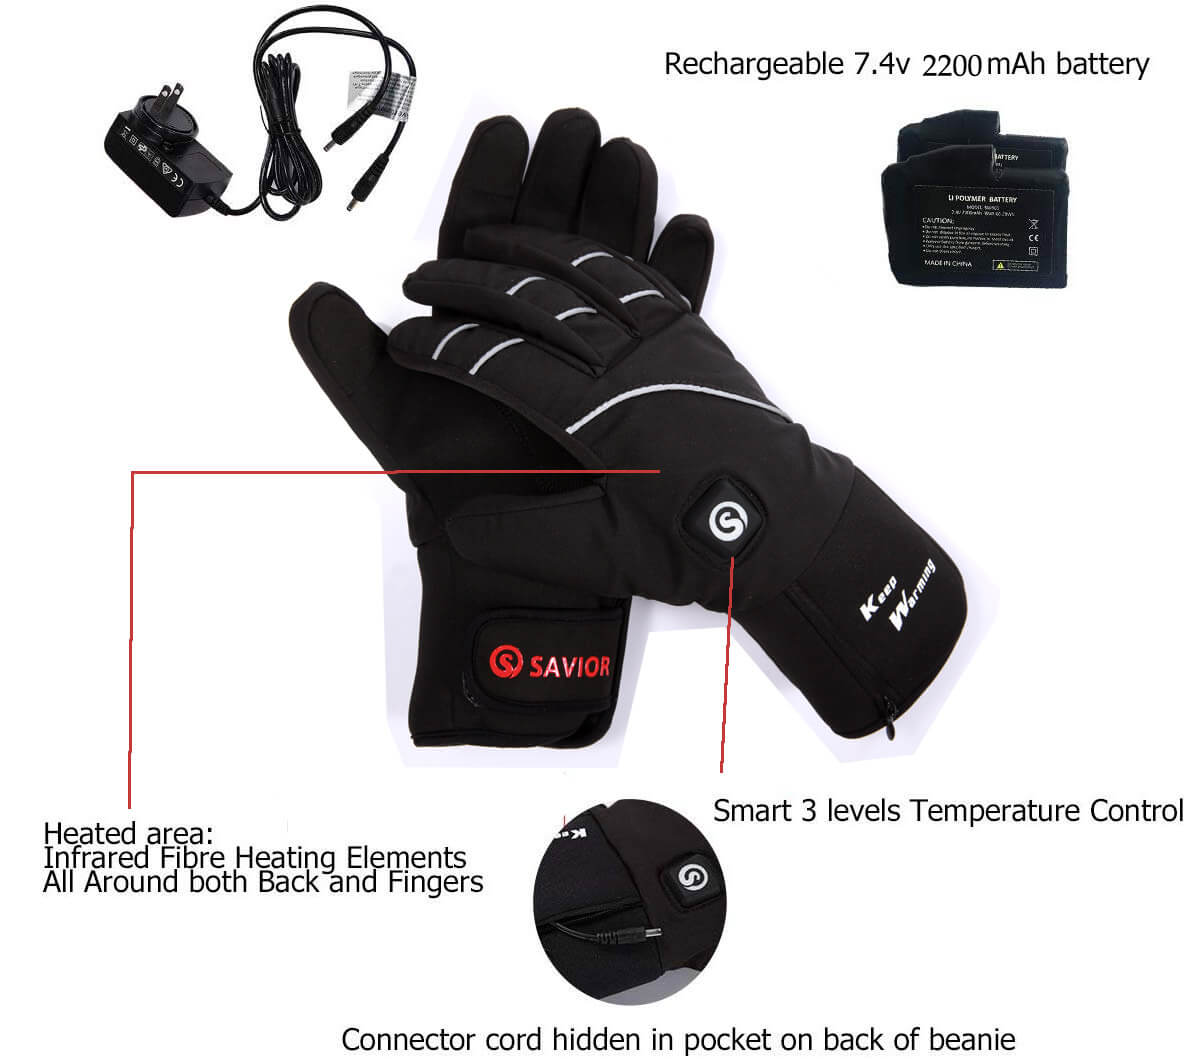 Savior is a company specializing in heated gloves. They found perfect solution for your hand in cold winter.